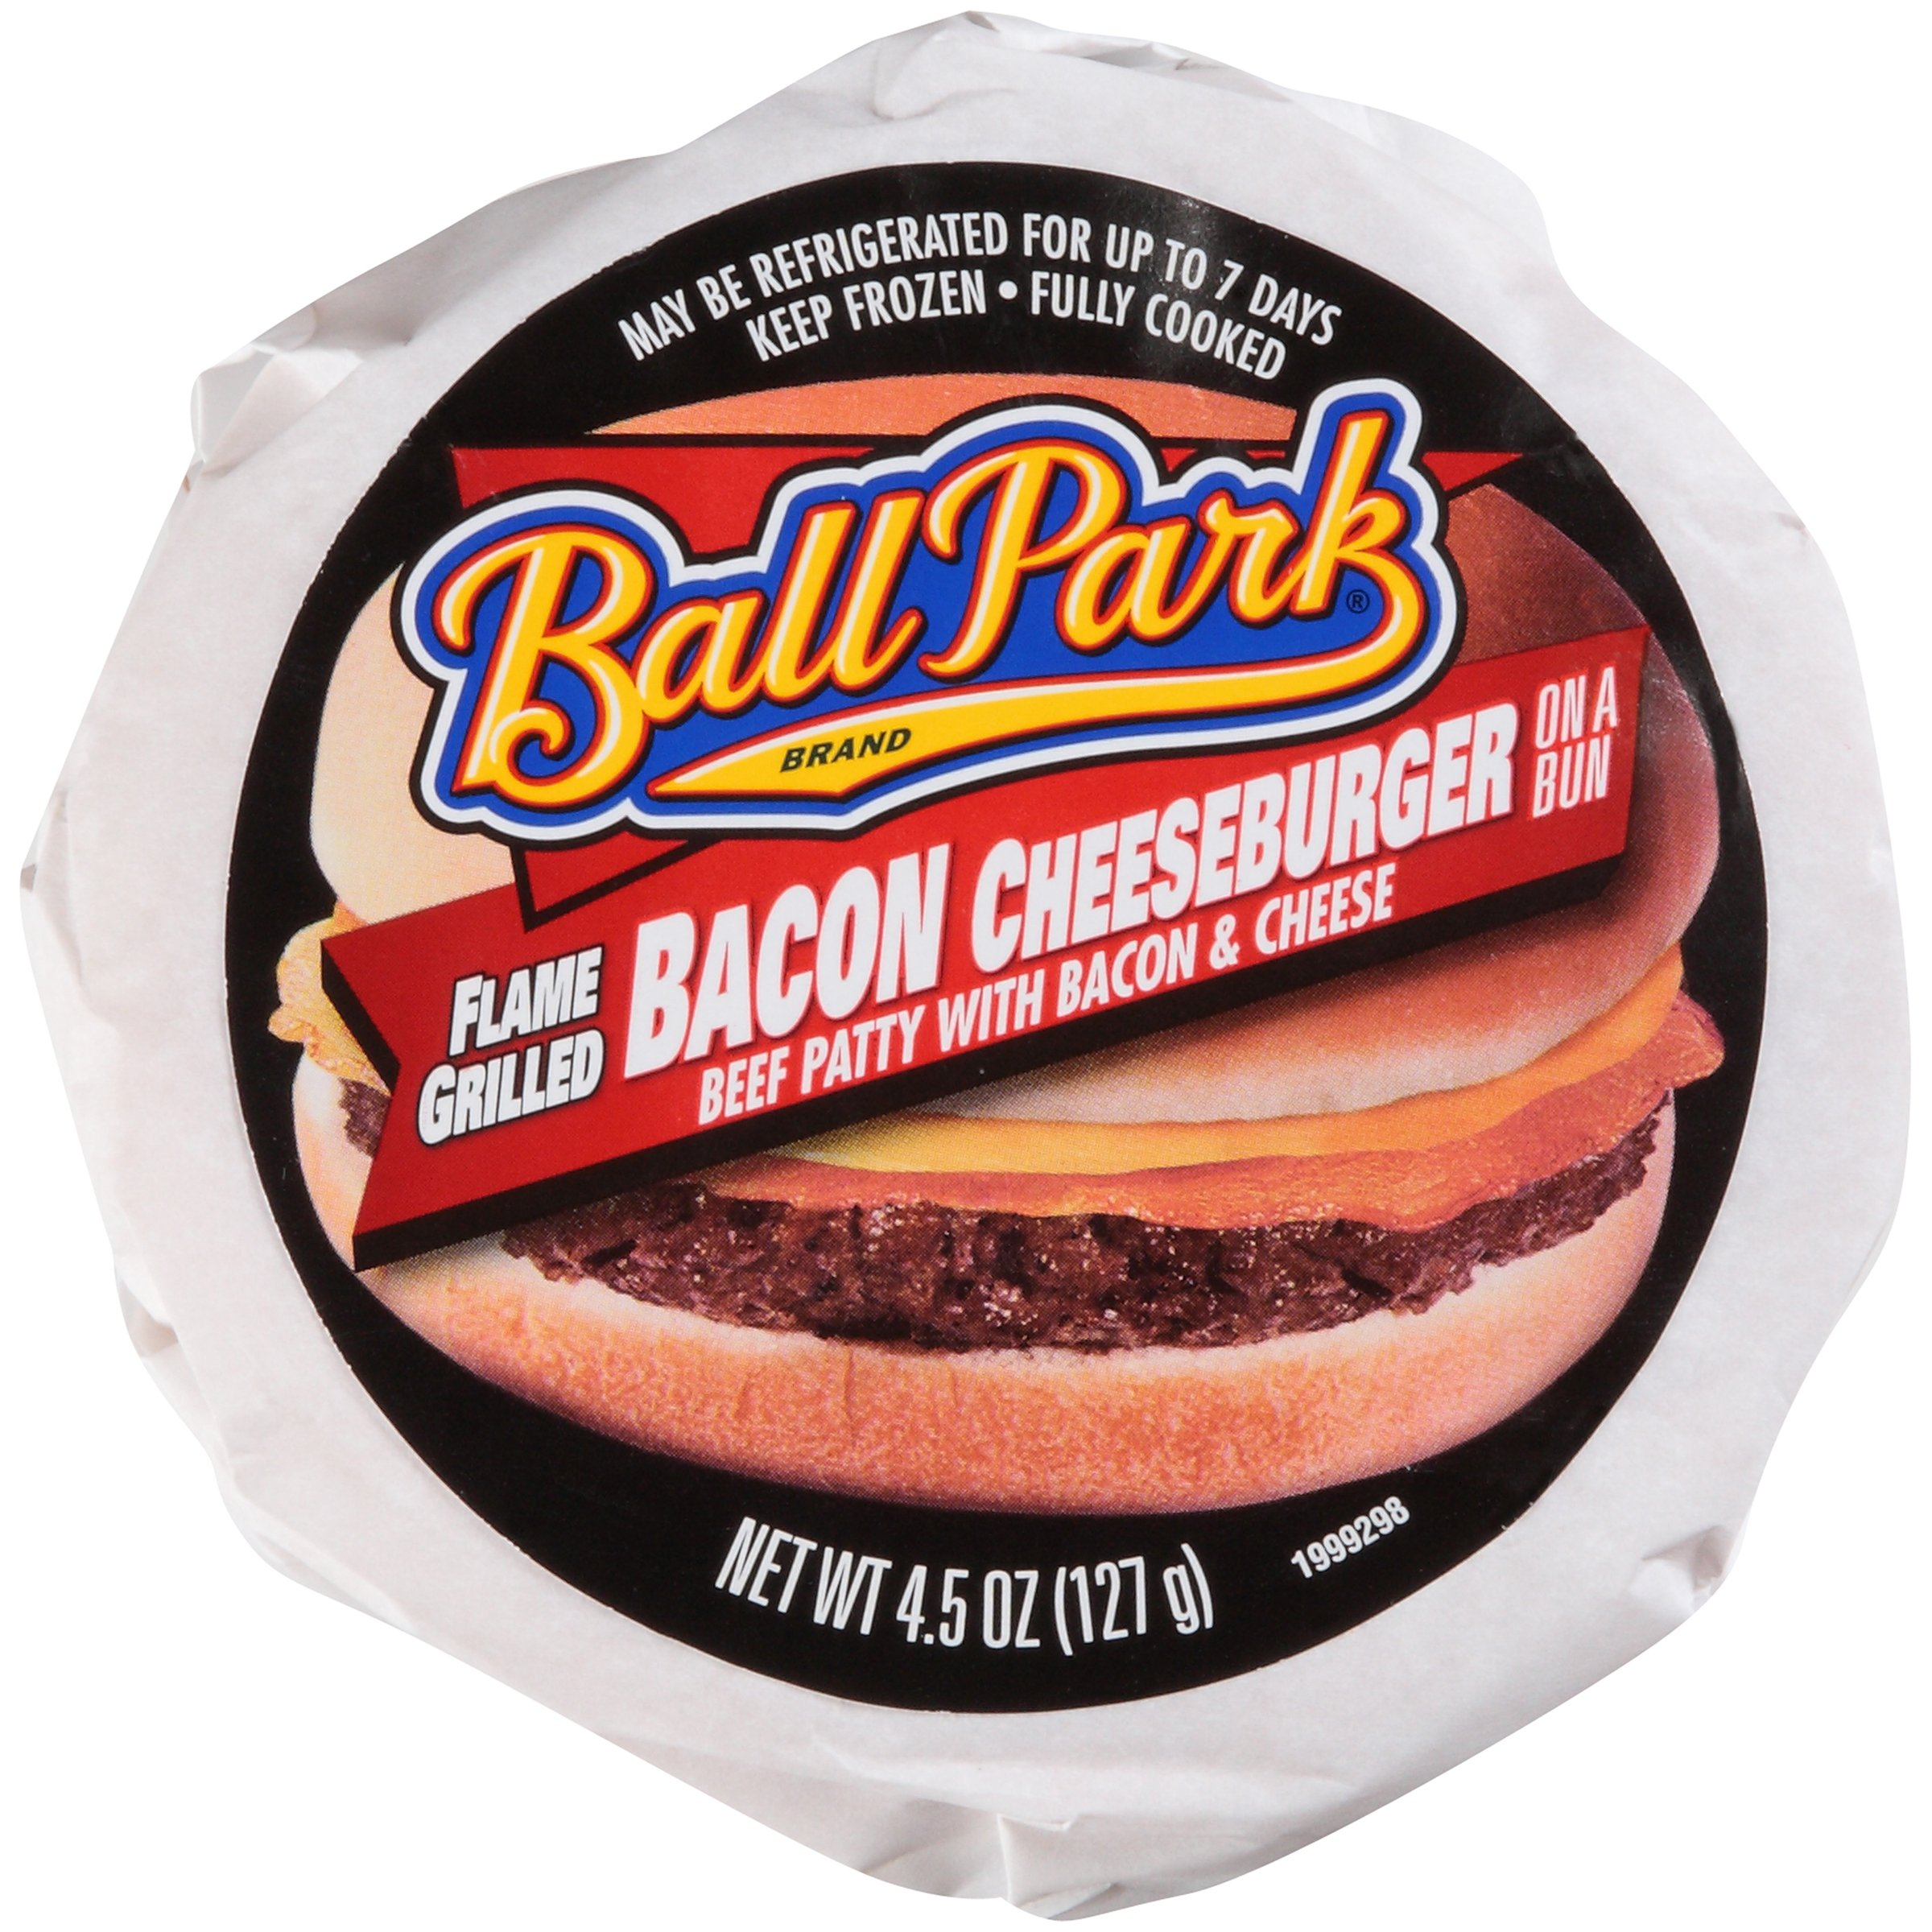 Ball Park Bacon Cheeseburger Sandwich 4.5 oz-Pack of 12